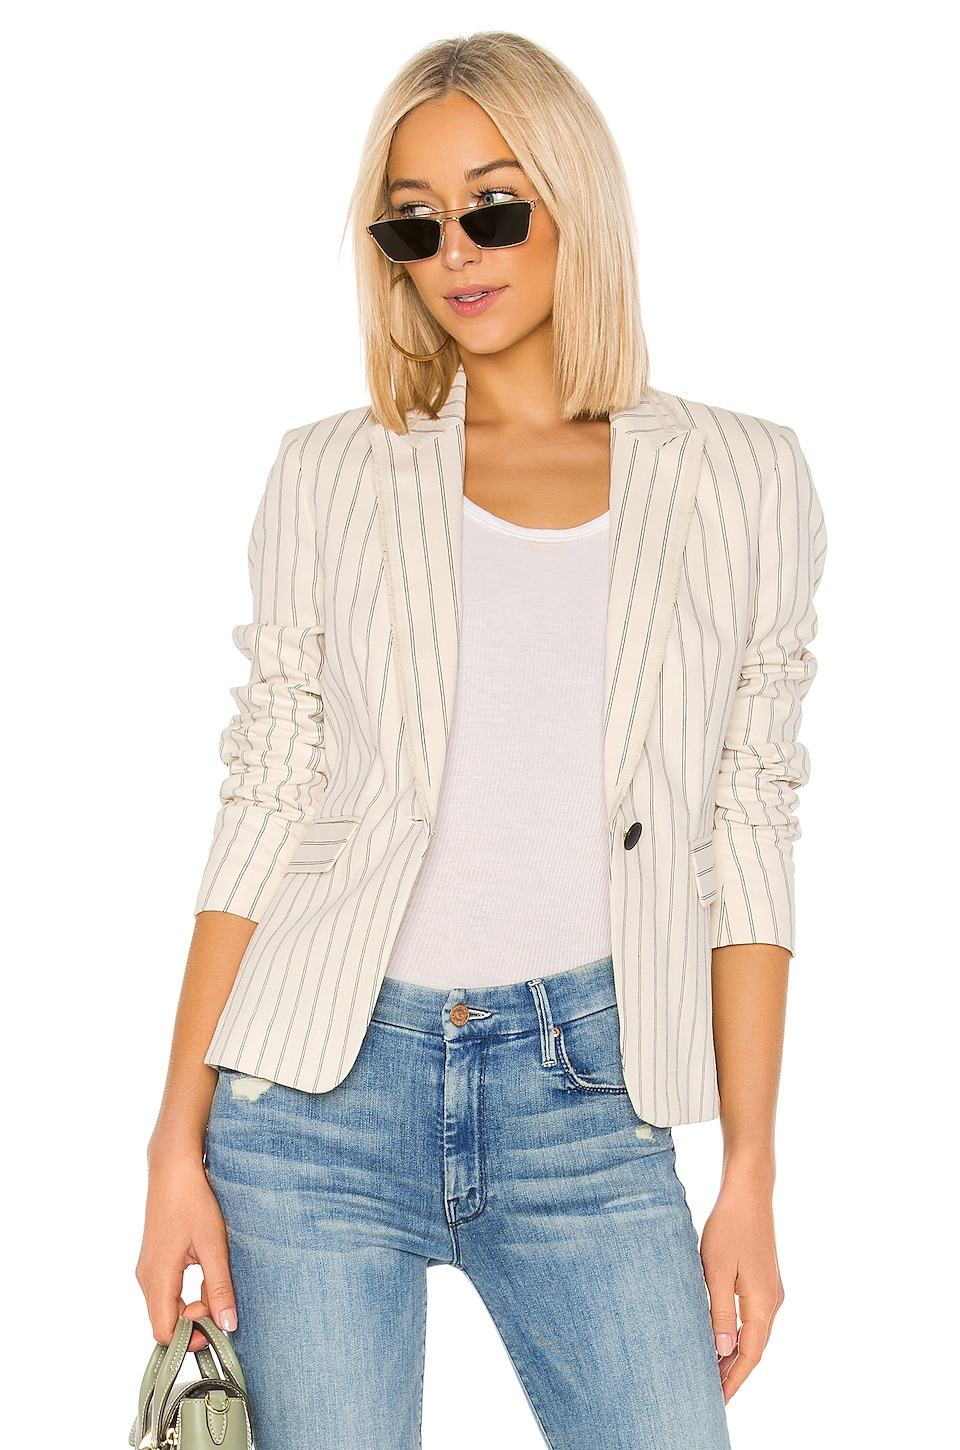 Rag & Bone Millie Blazer in Ivory & Black